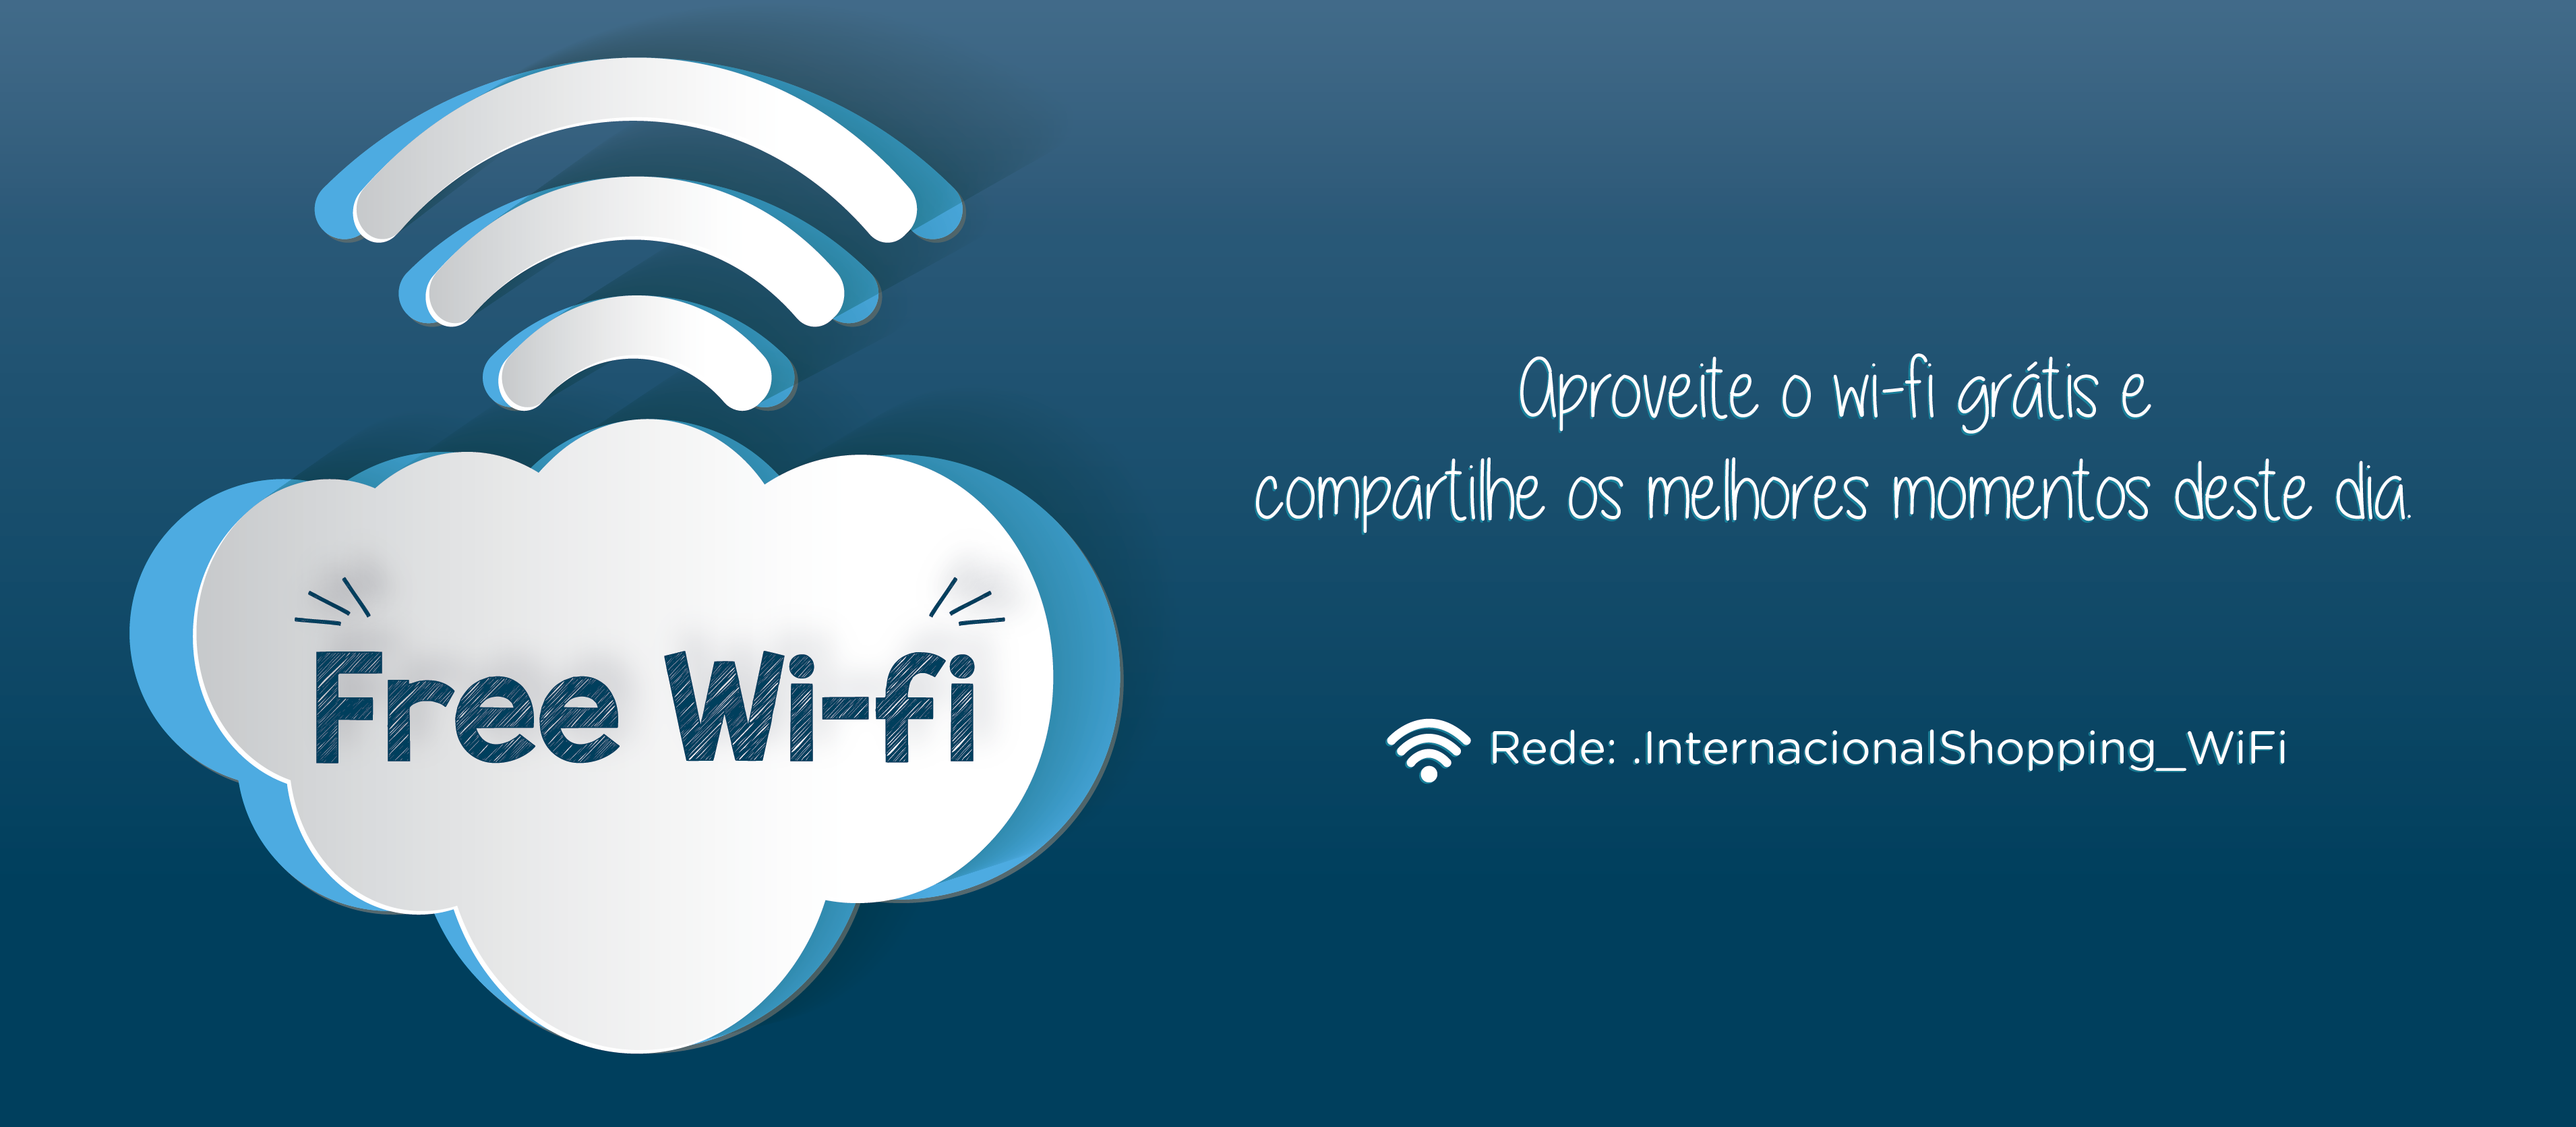 Wi-Fi Gratuito no Inter